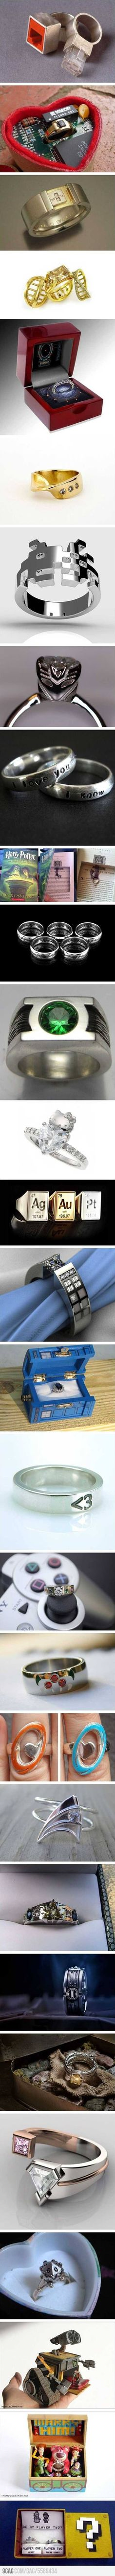 My kind of wedding rings. :-)